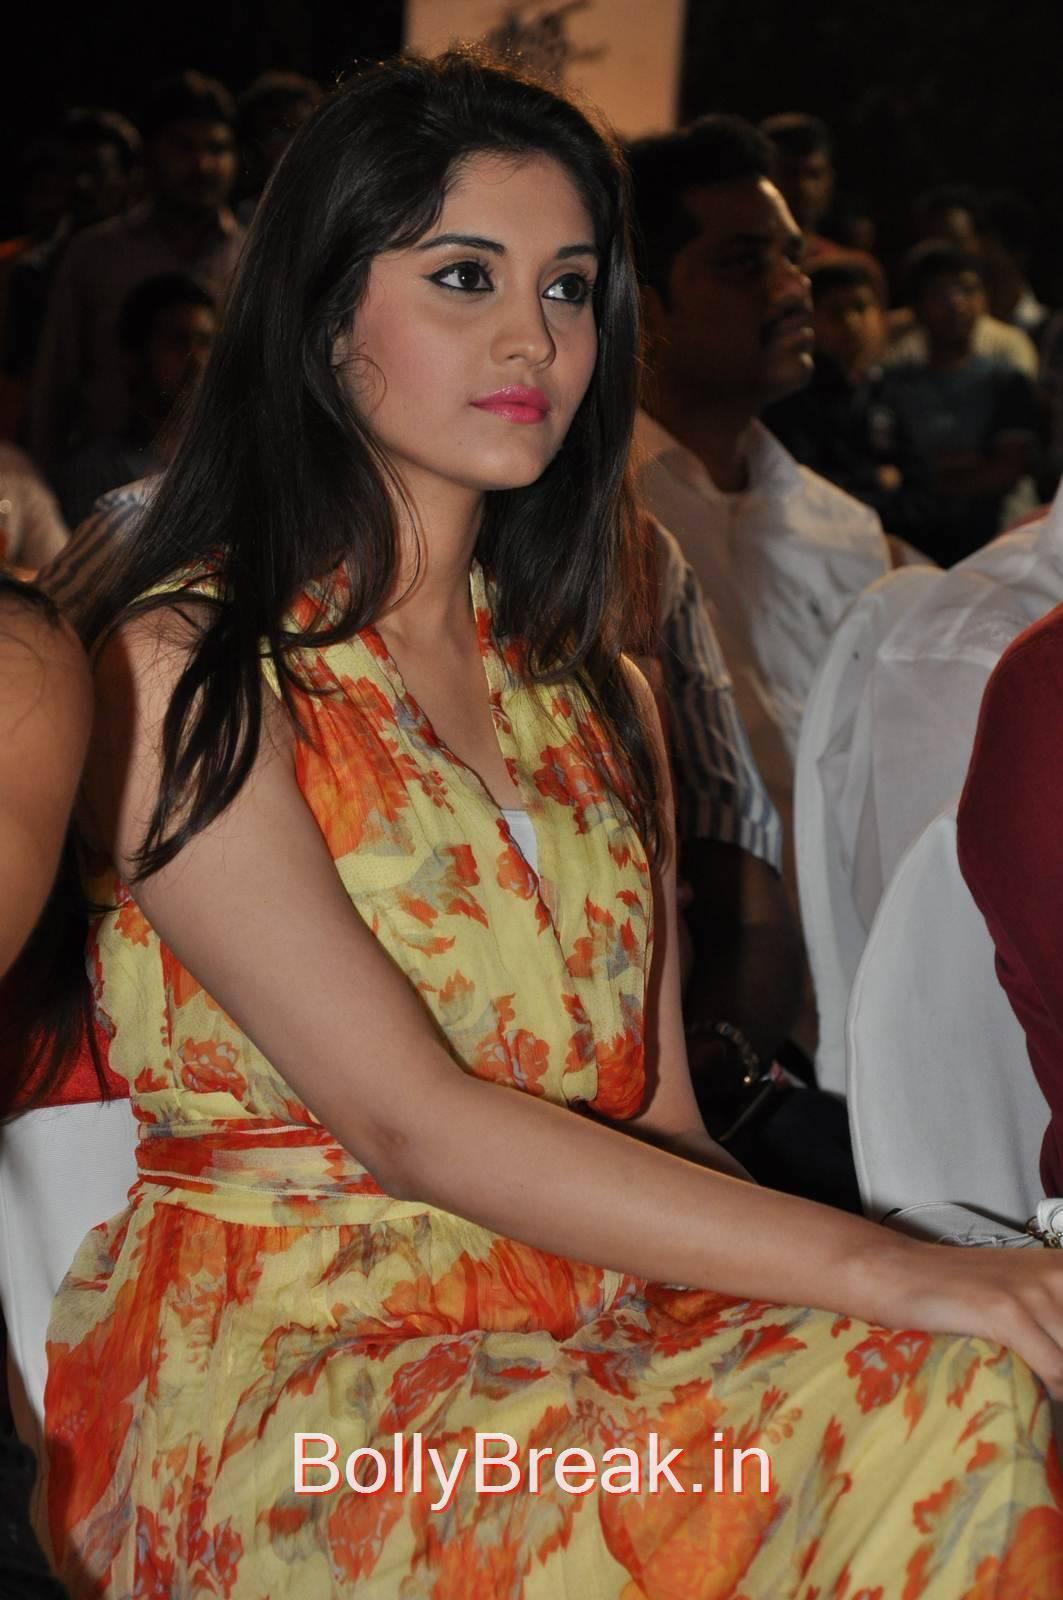 Surabhi Photo Gallery with no Watermarks, Actress Surabhi Hot Photo gallery from an event